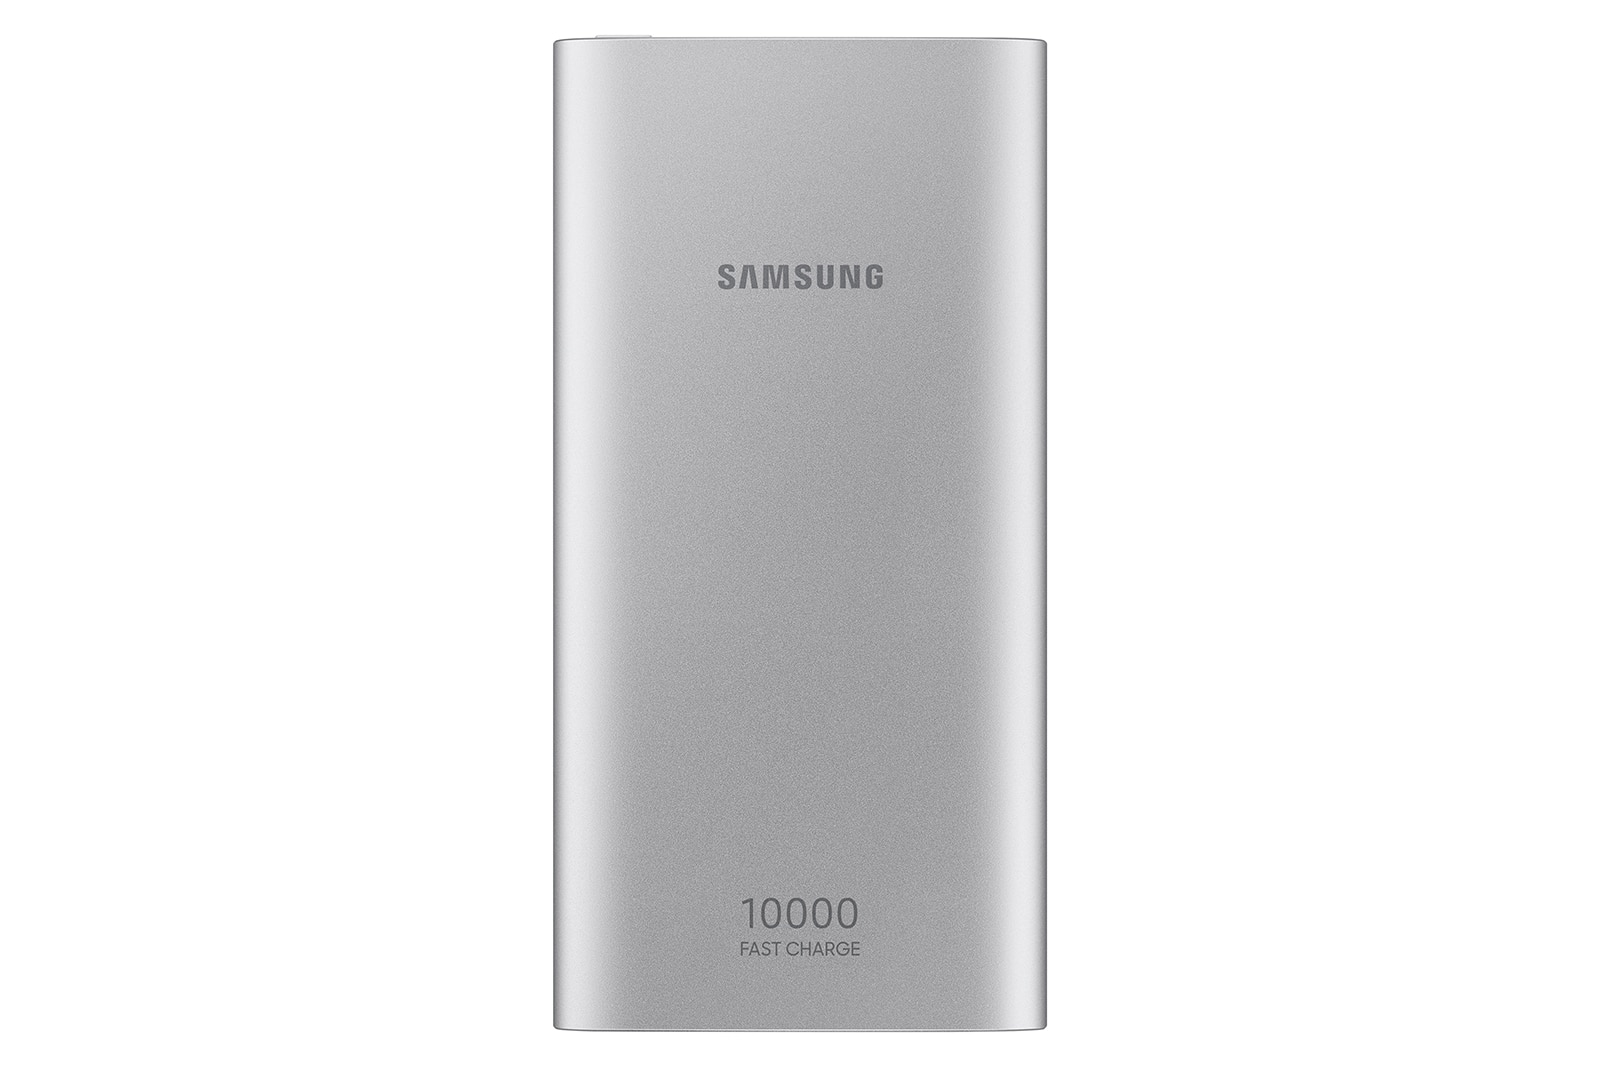 Samsung 10,000 mAh Portable Battery with Micro USB Cable, Silver $15.99